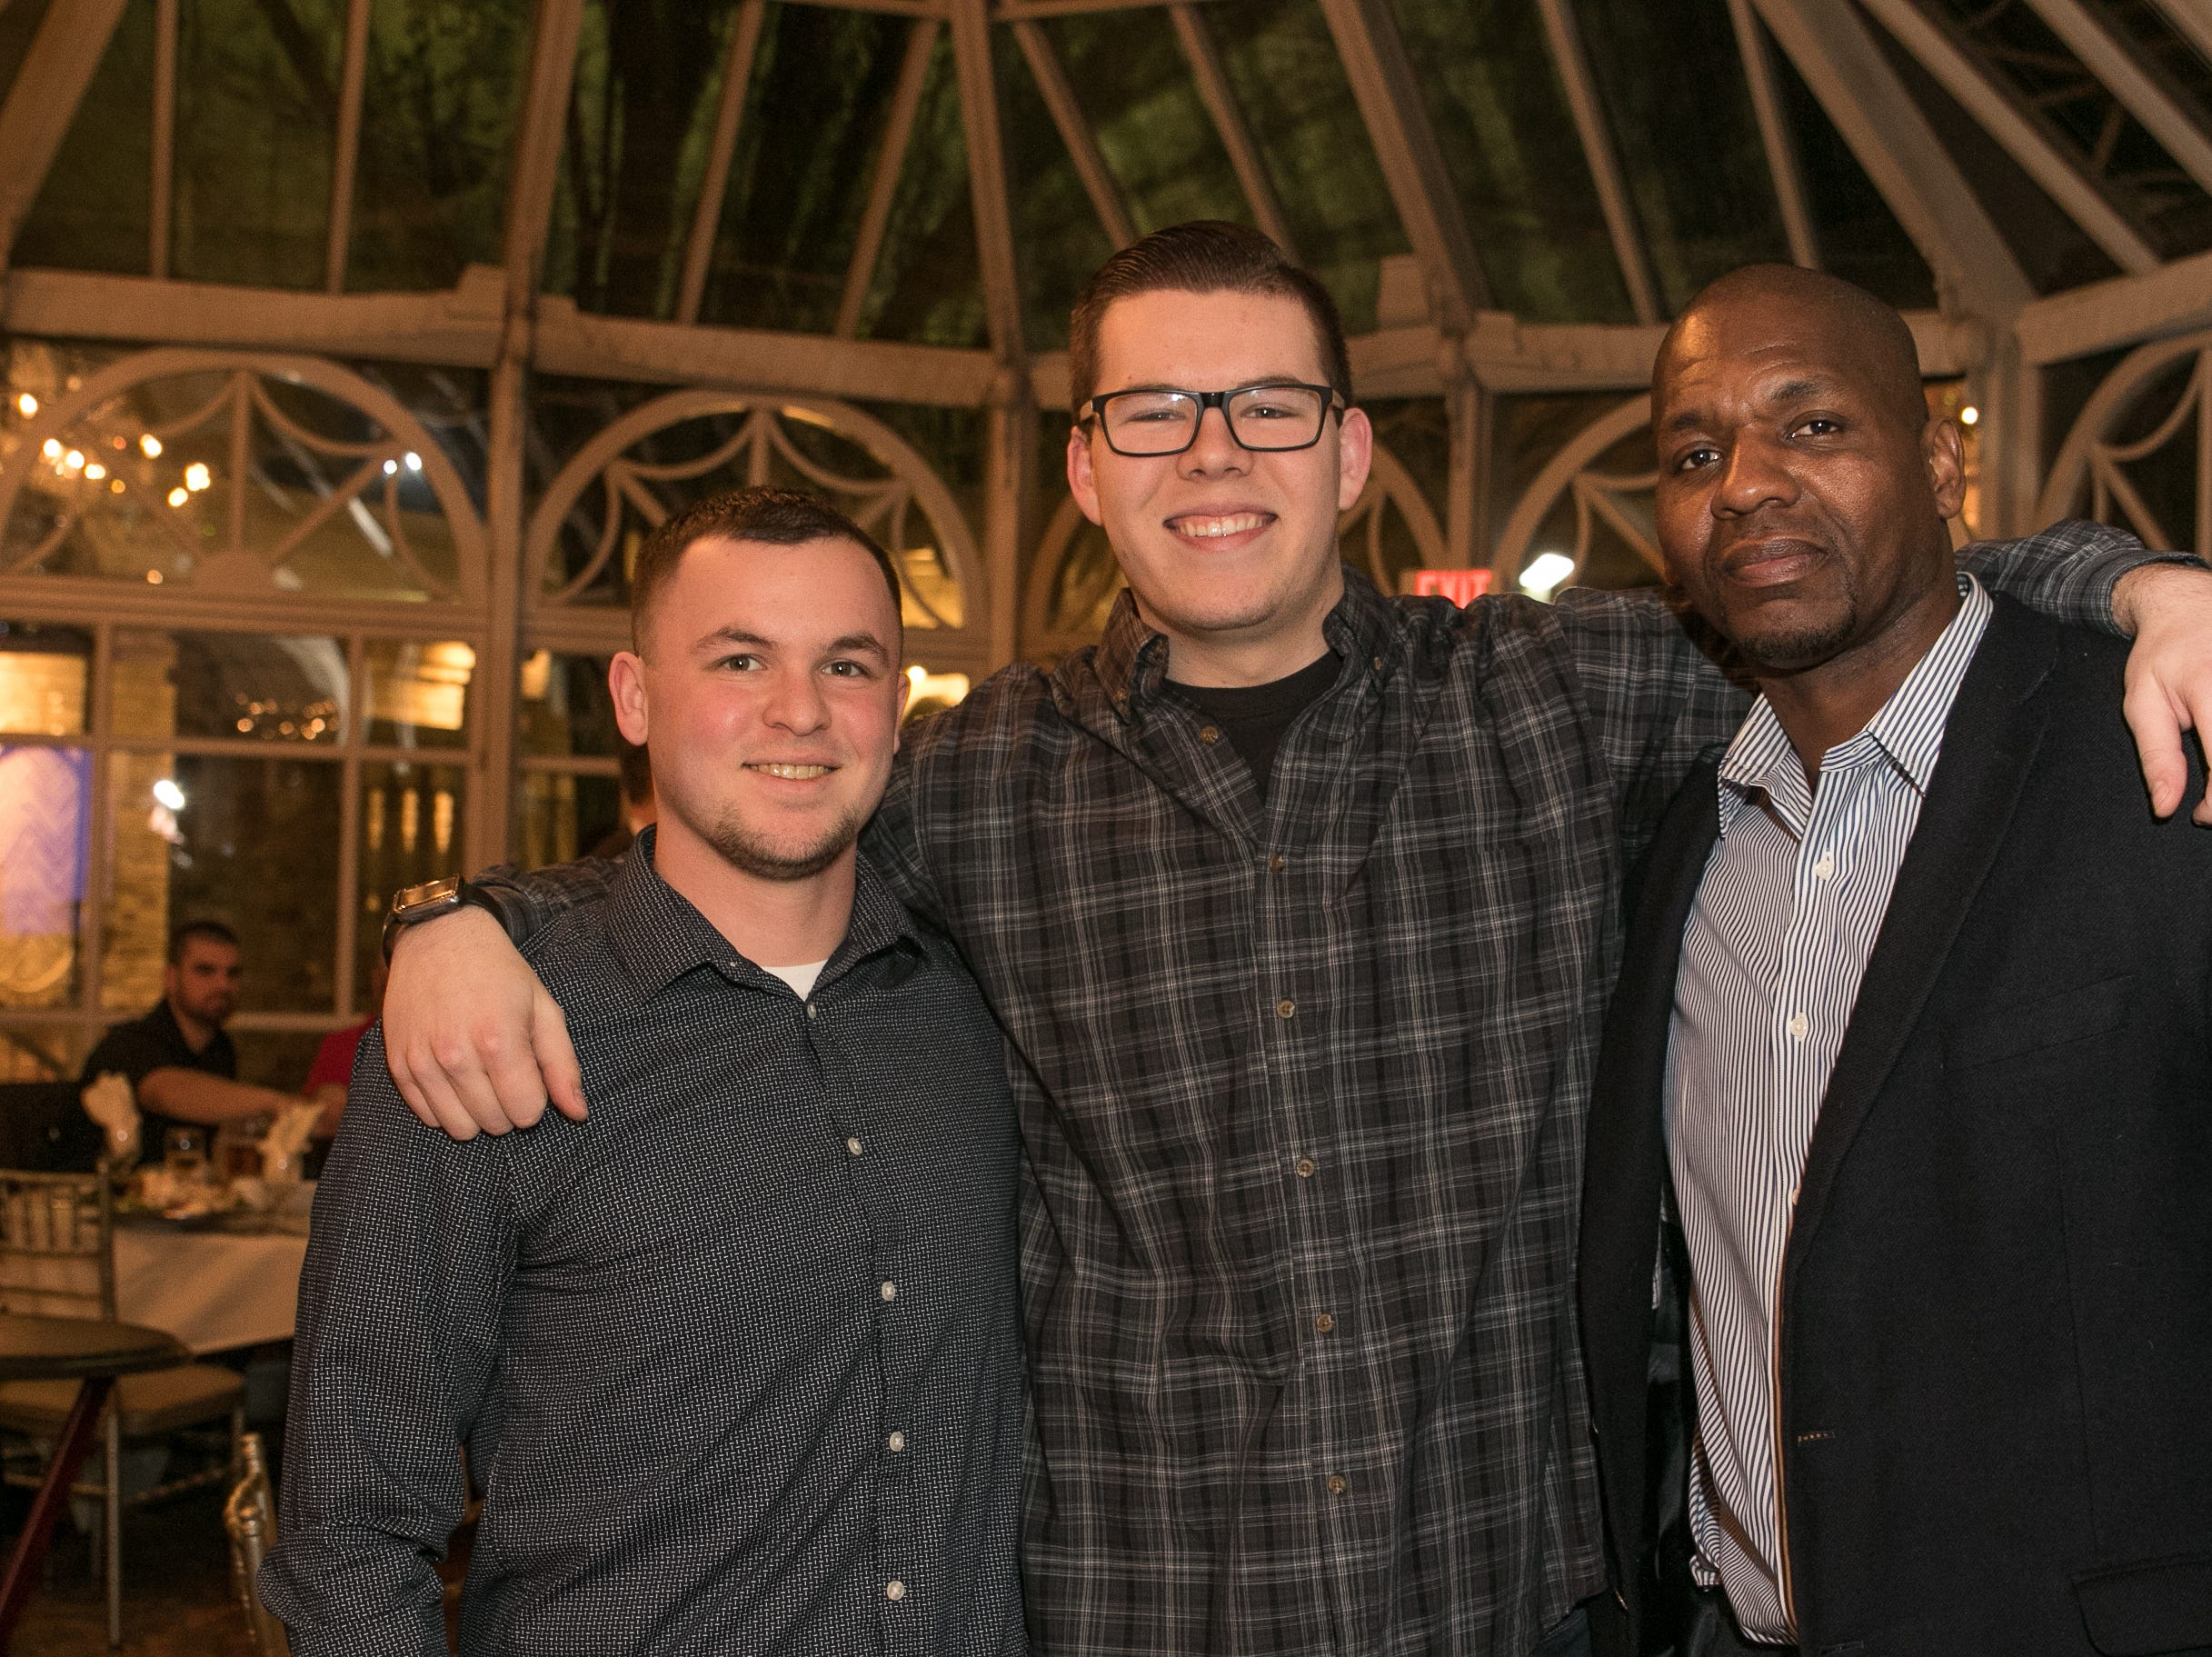 Tyler Post, Nick Johnson, former NY Giant Sam Garnes. Rebuilding Together North Jersey held its third annual Beefsteak Dinner with former NY Giants Howard Cross, Amani Toomer, and Sam Garnes at the Brownstone in Paterson. 03/07/2019